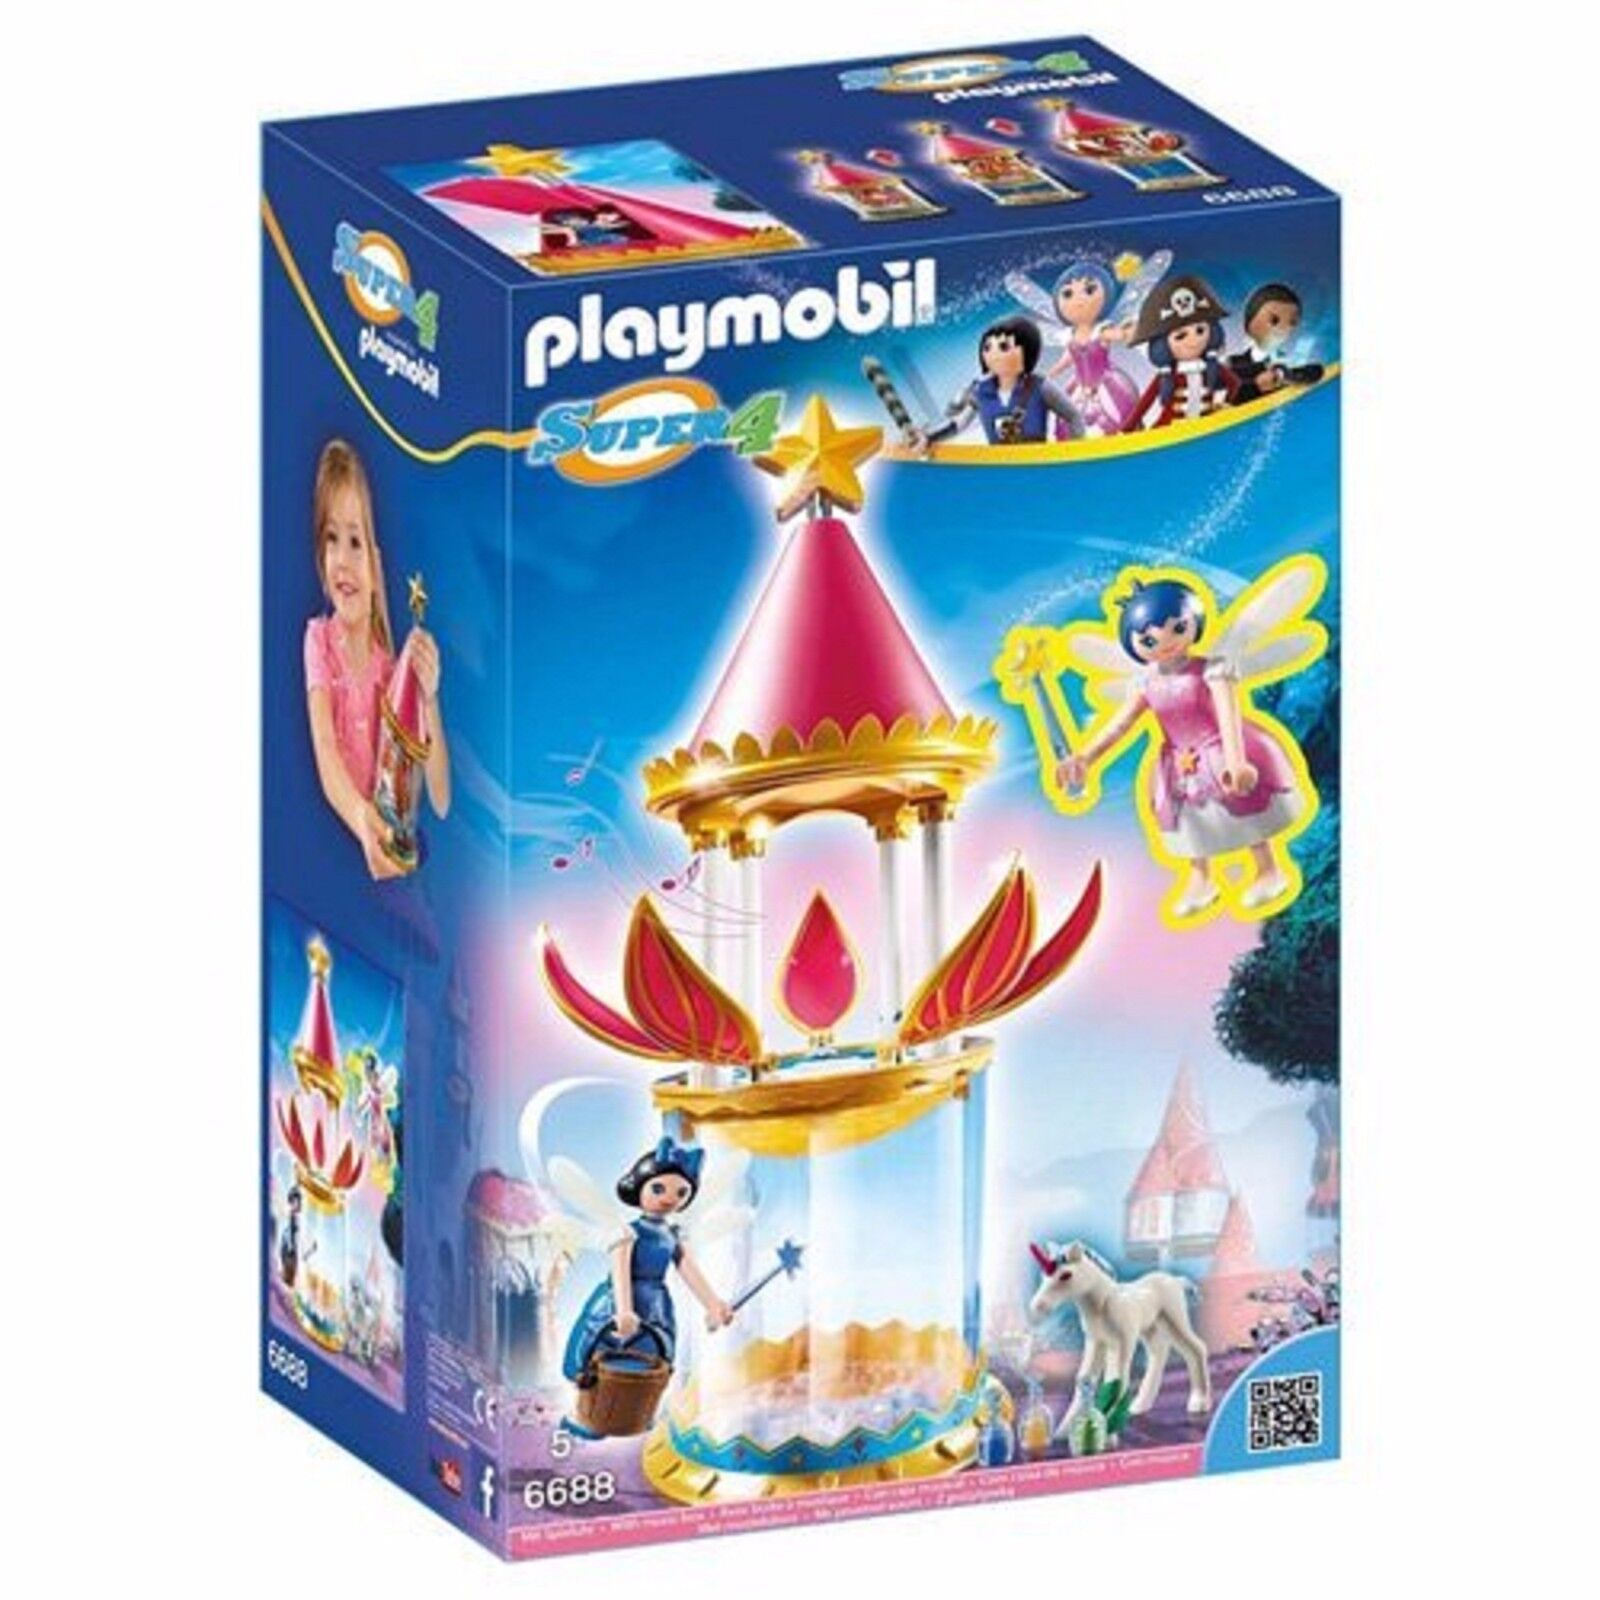 Playmobil 6688 Super 4  Enchanted Isle Fairy Castle Ages 5+ Boys Gift Girls divertimento  in linea